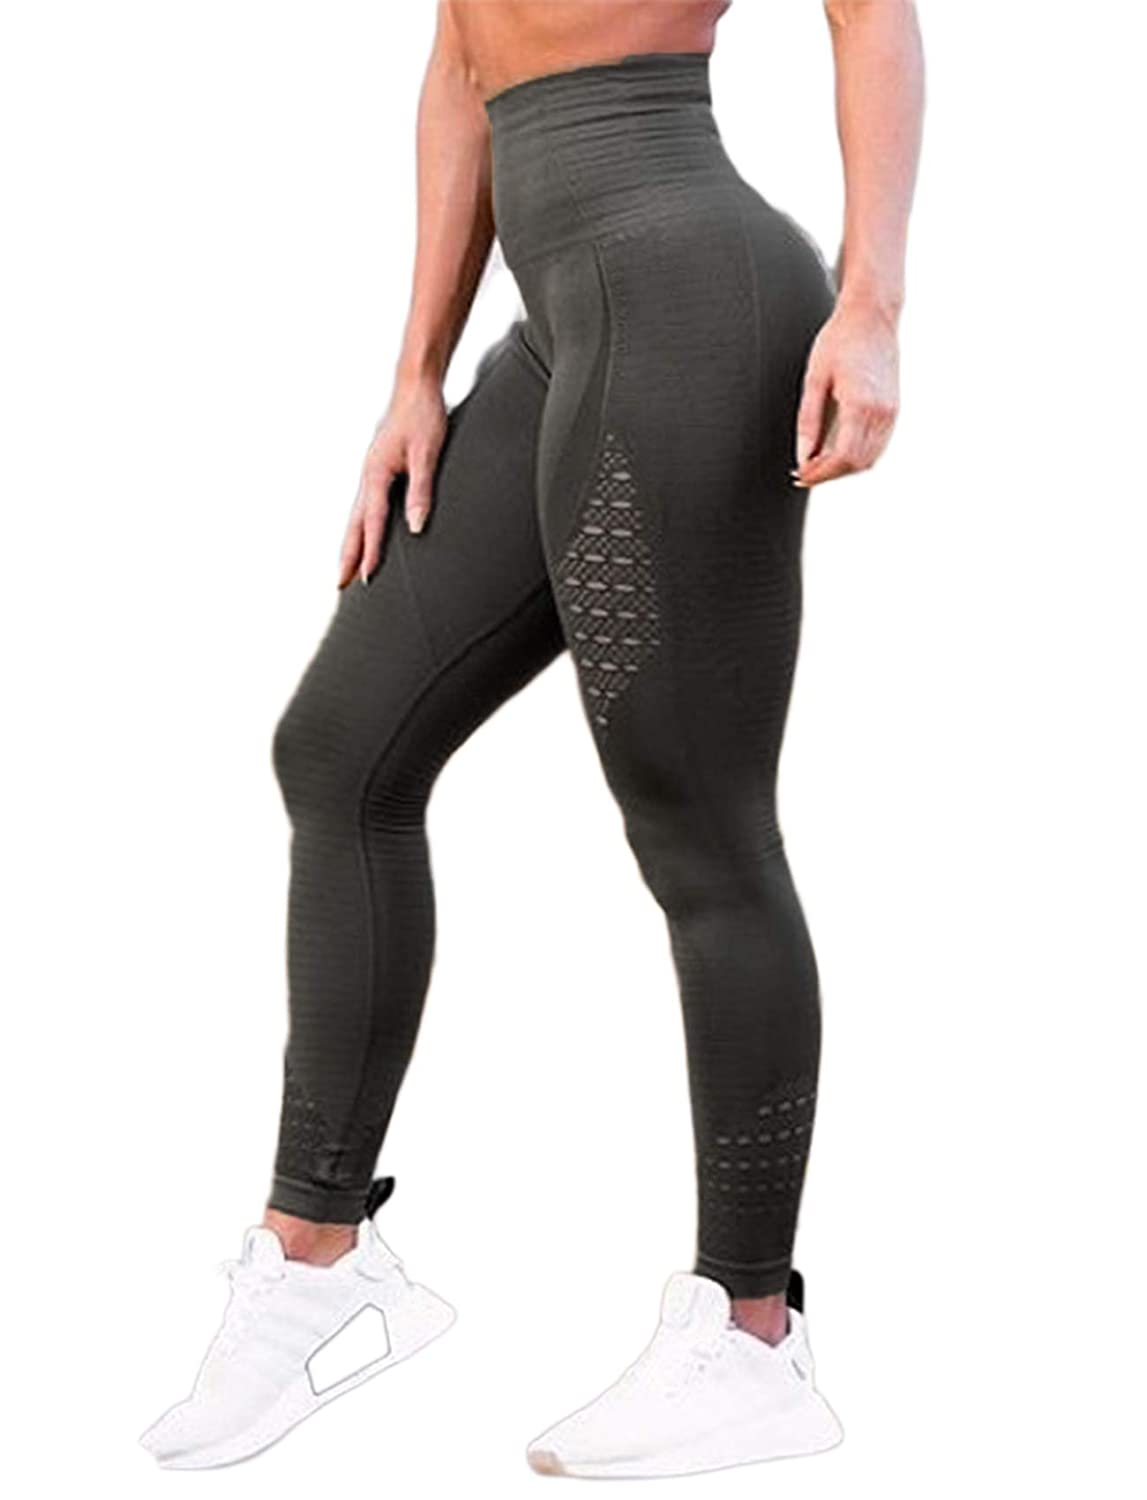 Amazon.com  SEASUM Women s High Waist Active Leggings Slimming Seamless  Compression Fit Pants Workout Tights with Mesh  Clothing 4657a6ecd2